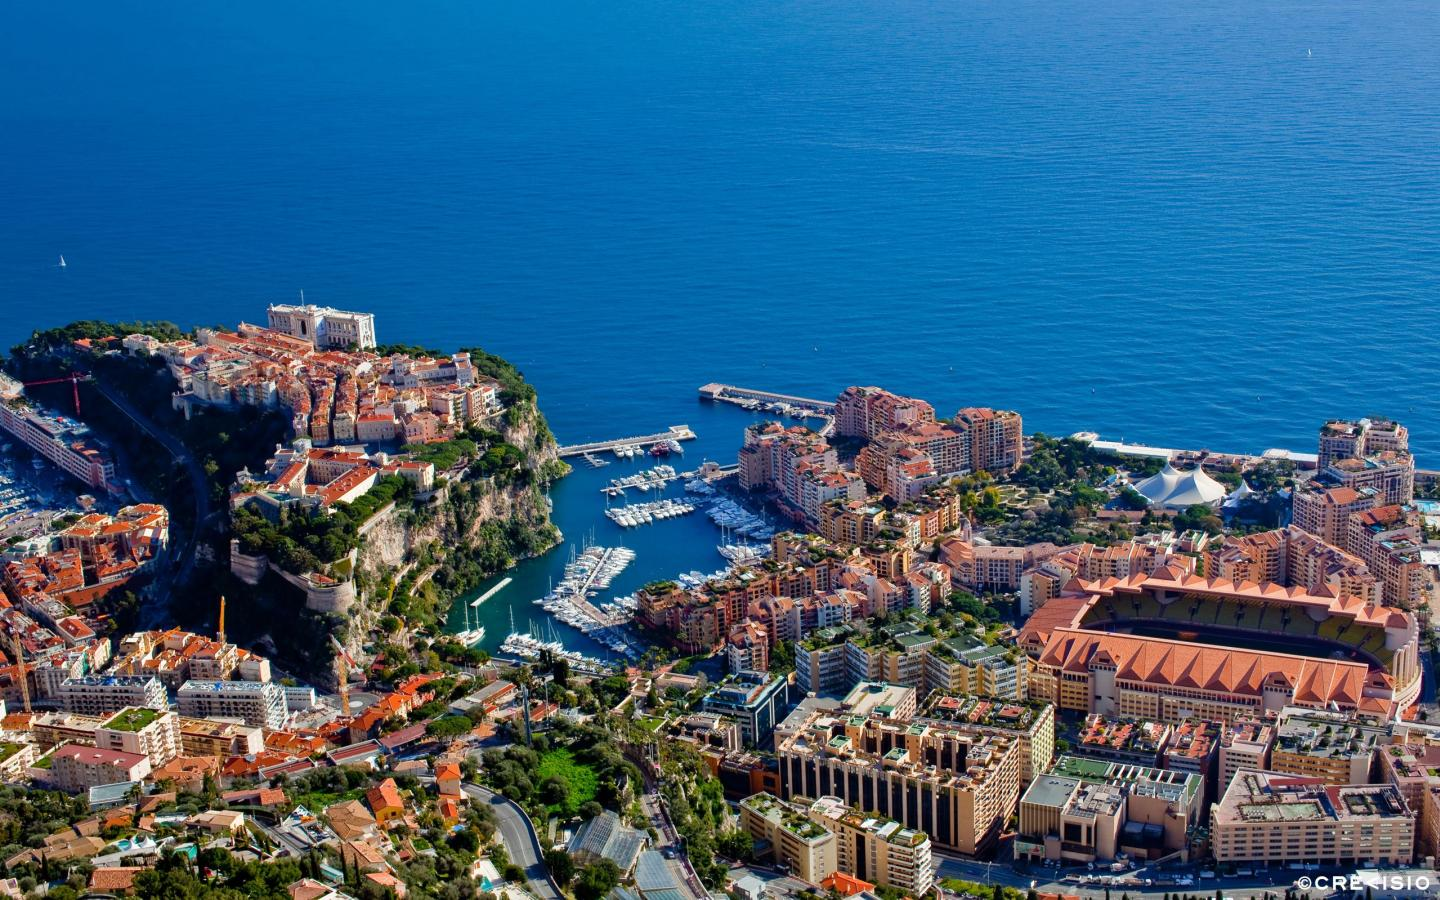 Fontvieille From Above by Crevisio